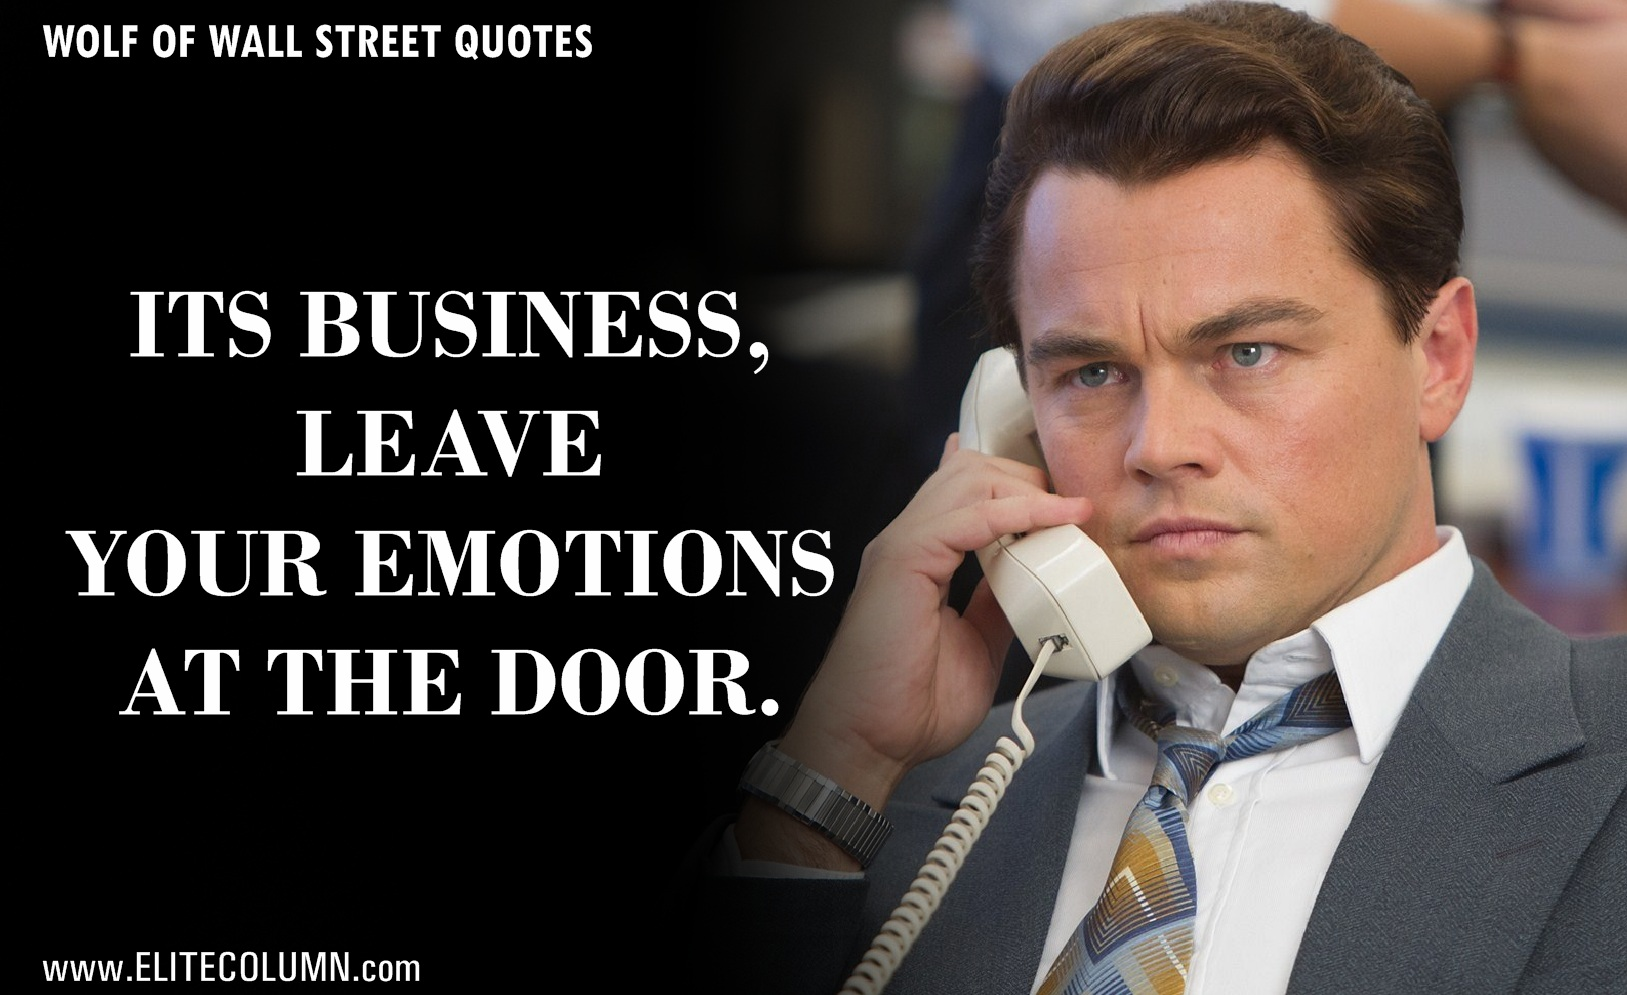 The Wolf Of Wall Street Quotes (4)